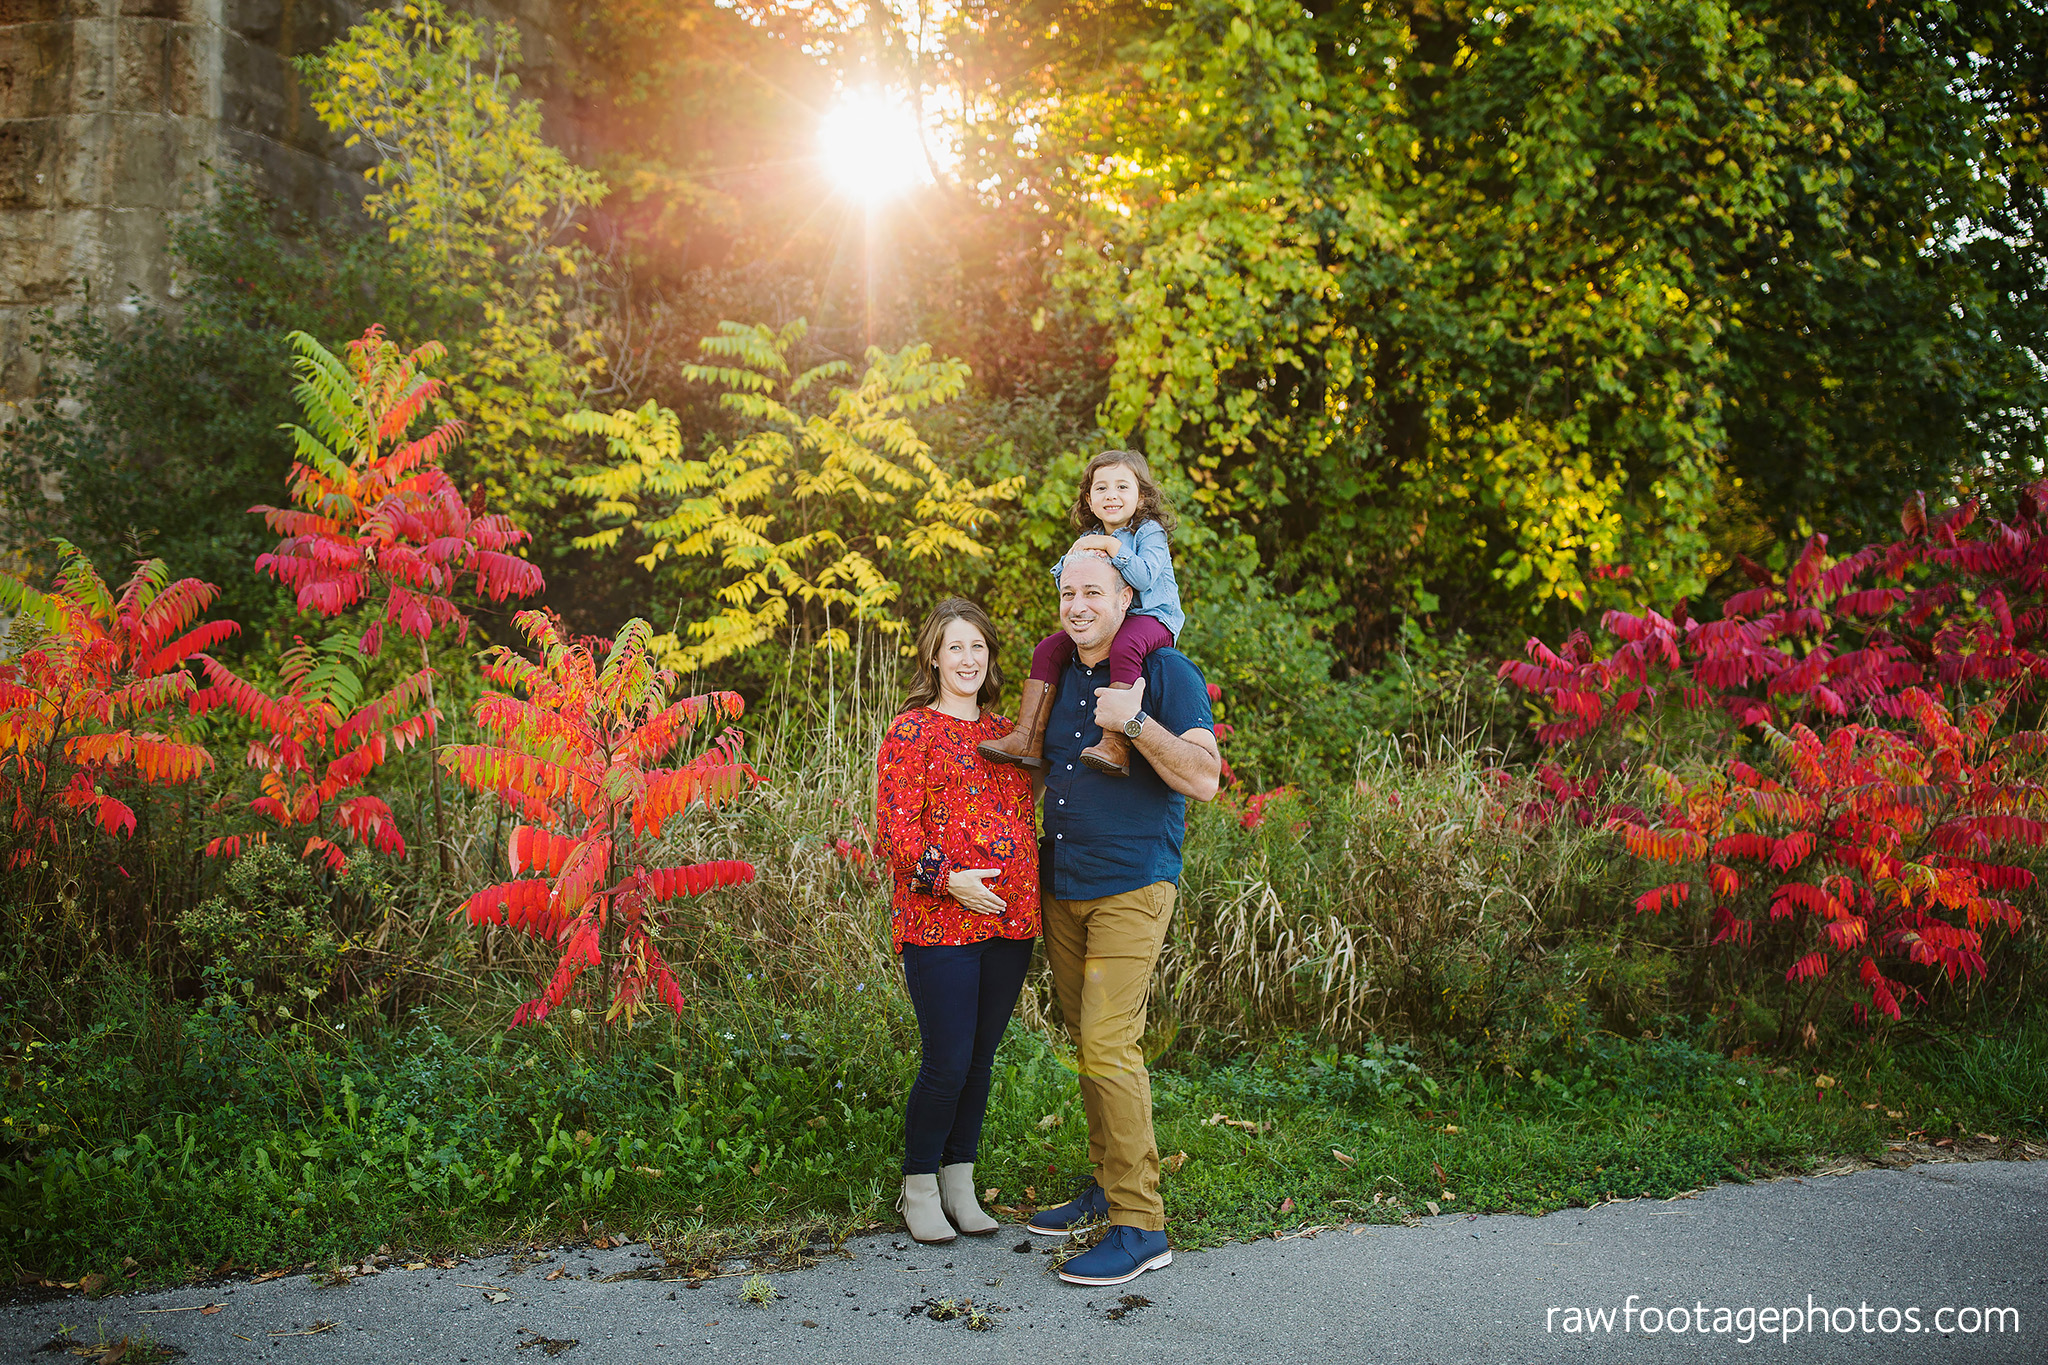 london_ontario_family_photographer-golden_hour_maternity_session-raw_footage_photography030.jpg